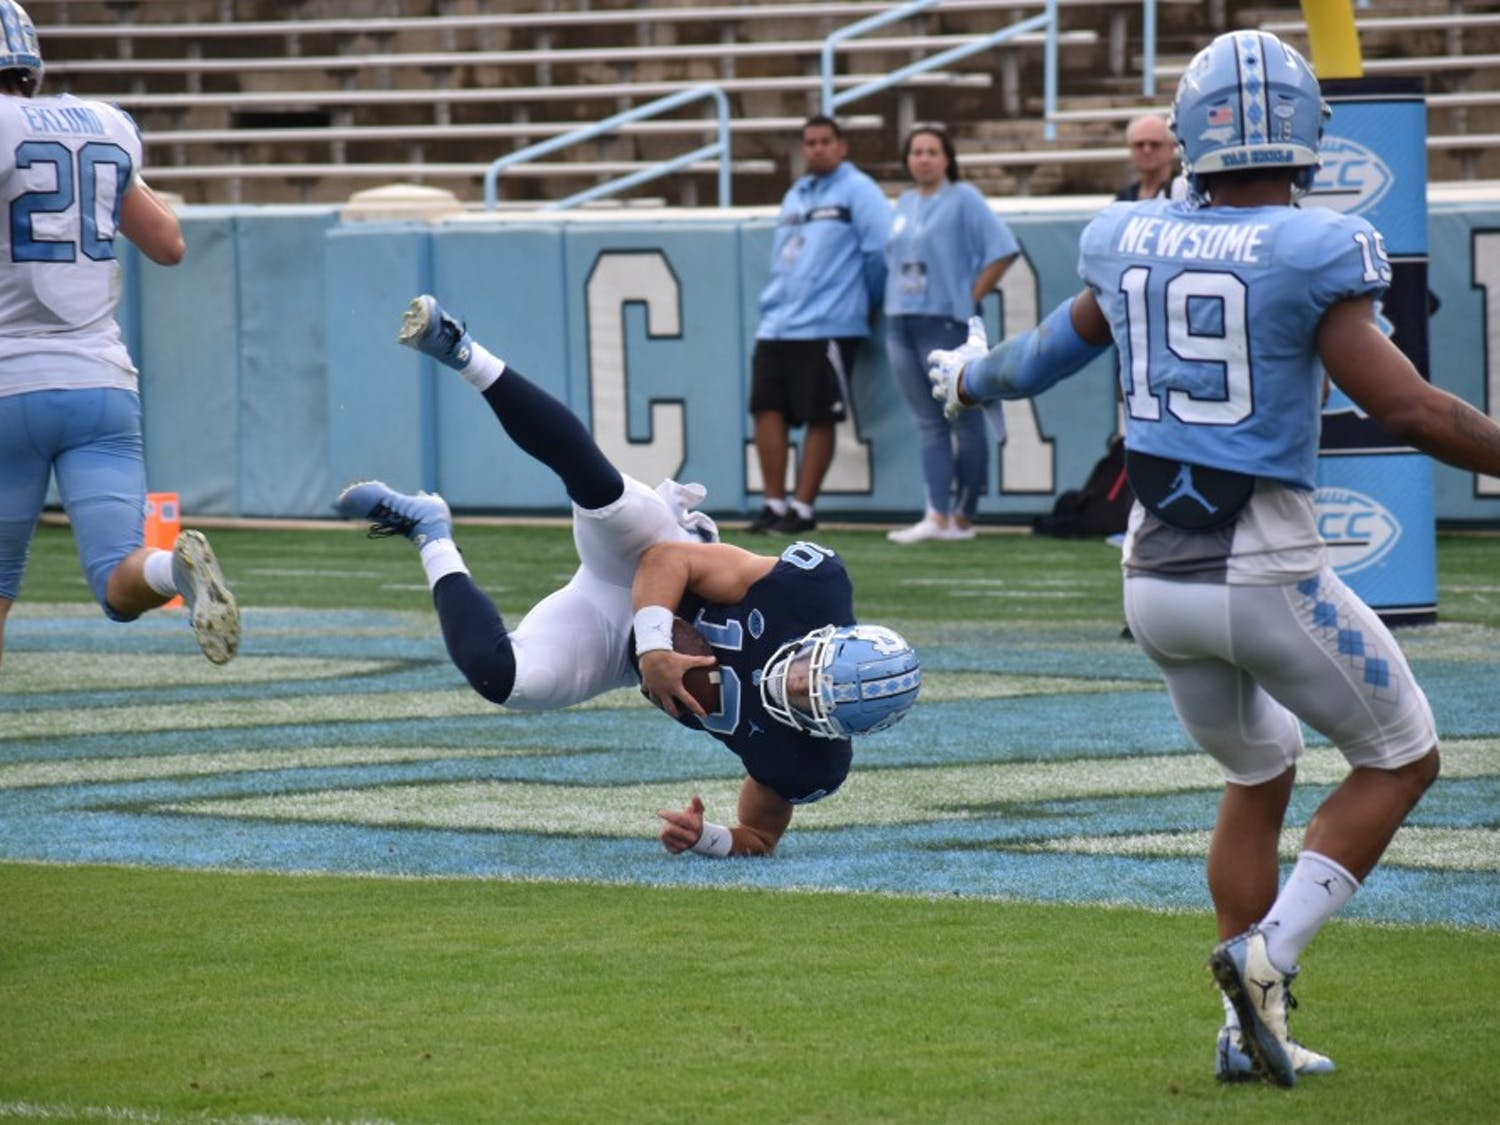 UNC first-year quarterback Jace Ruder (10) leaps into the end zone for a touchdown in the Spring Football Game on April 13, 2019 in Kenan Stadium. The Carolina team defeated the Tar Heel team 25-10.